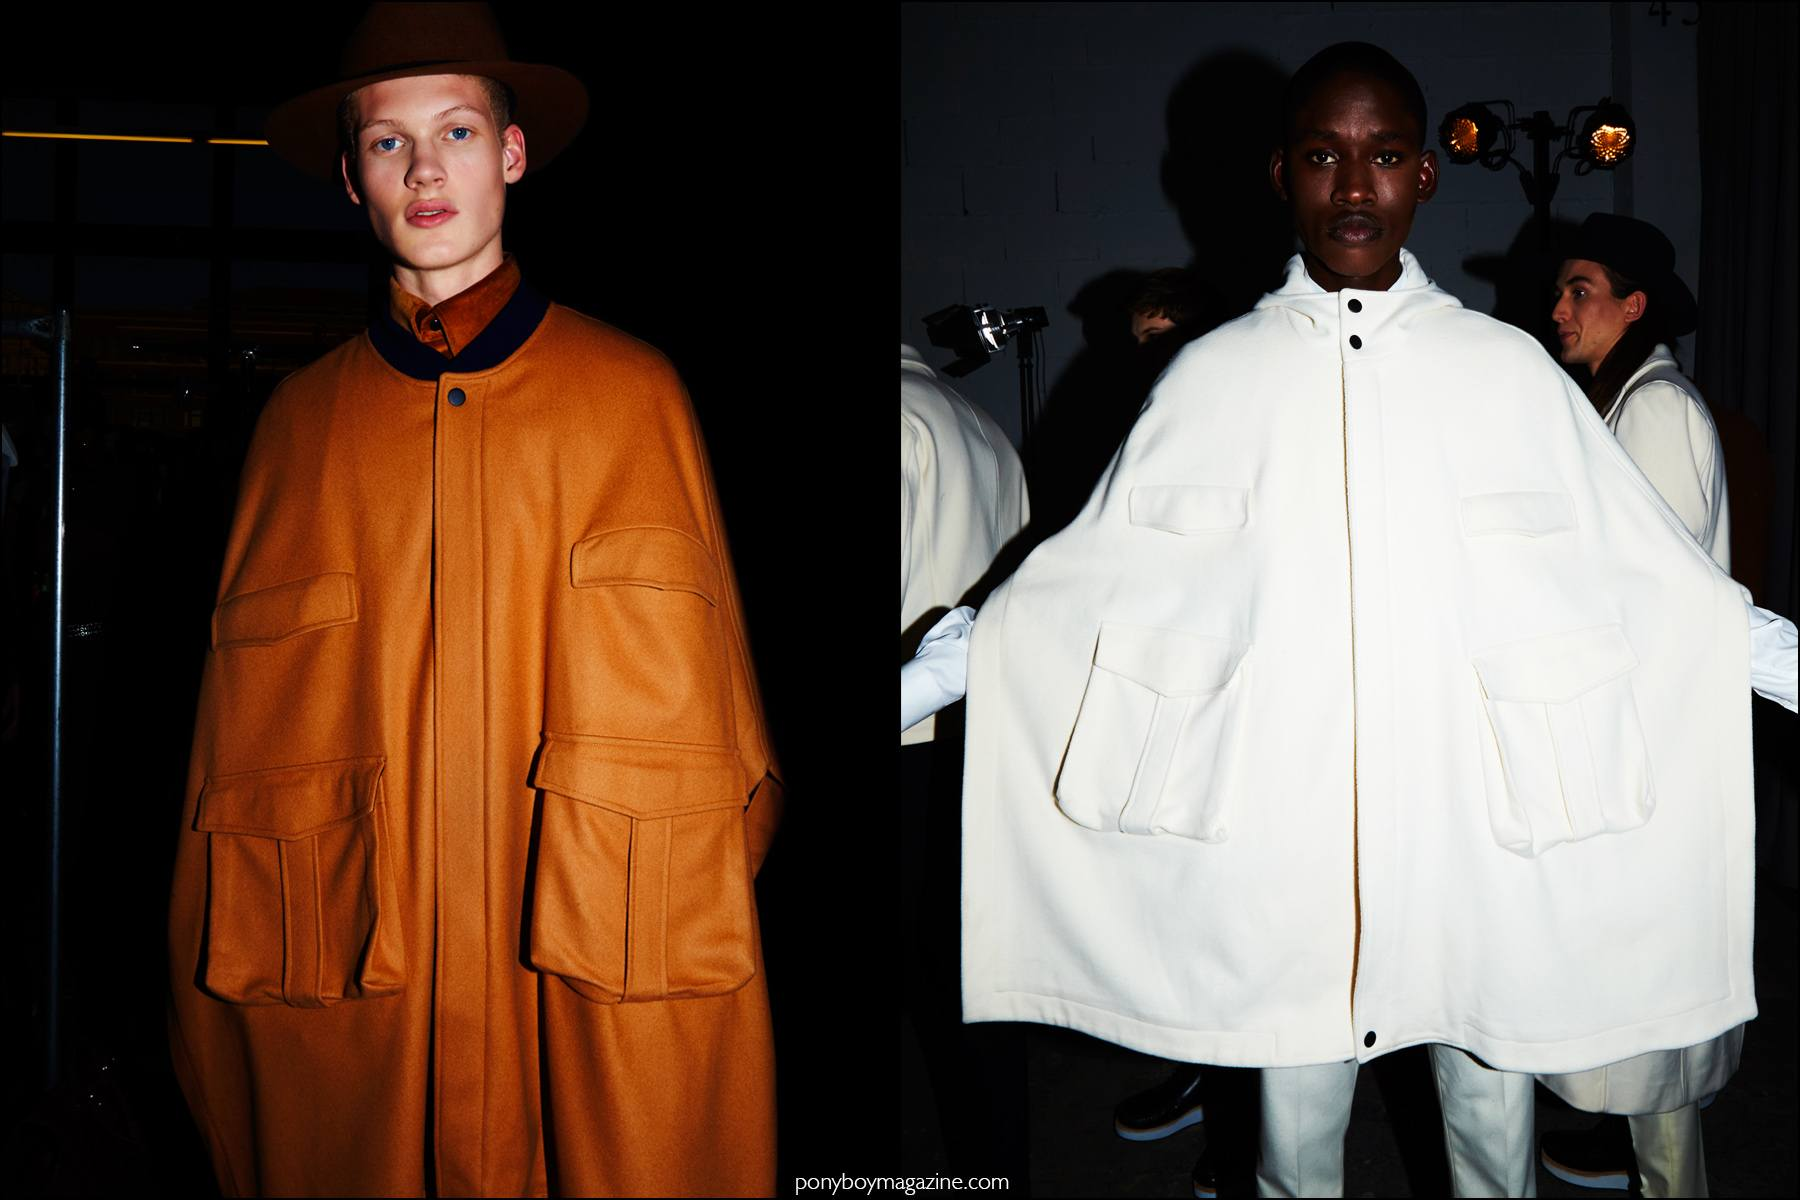 Male models Dillon Westbrock and Adonis Bosso photographed backstage at Carlos Campos F/W16 menswear show. Photographed by Alexander Thompson for Ponyboy magazine NY.